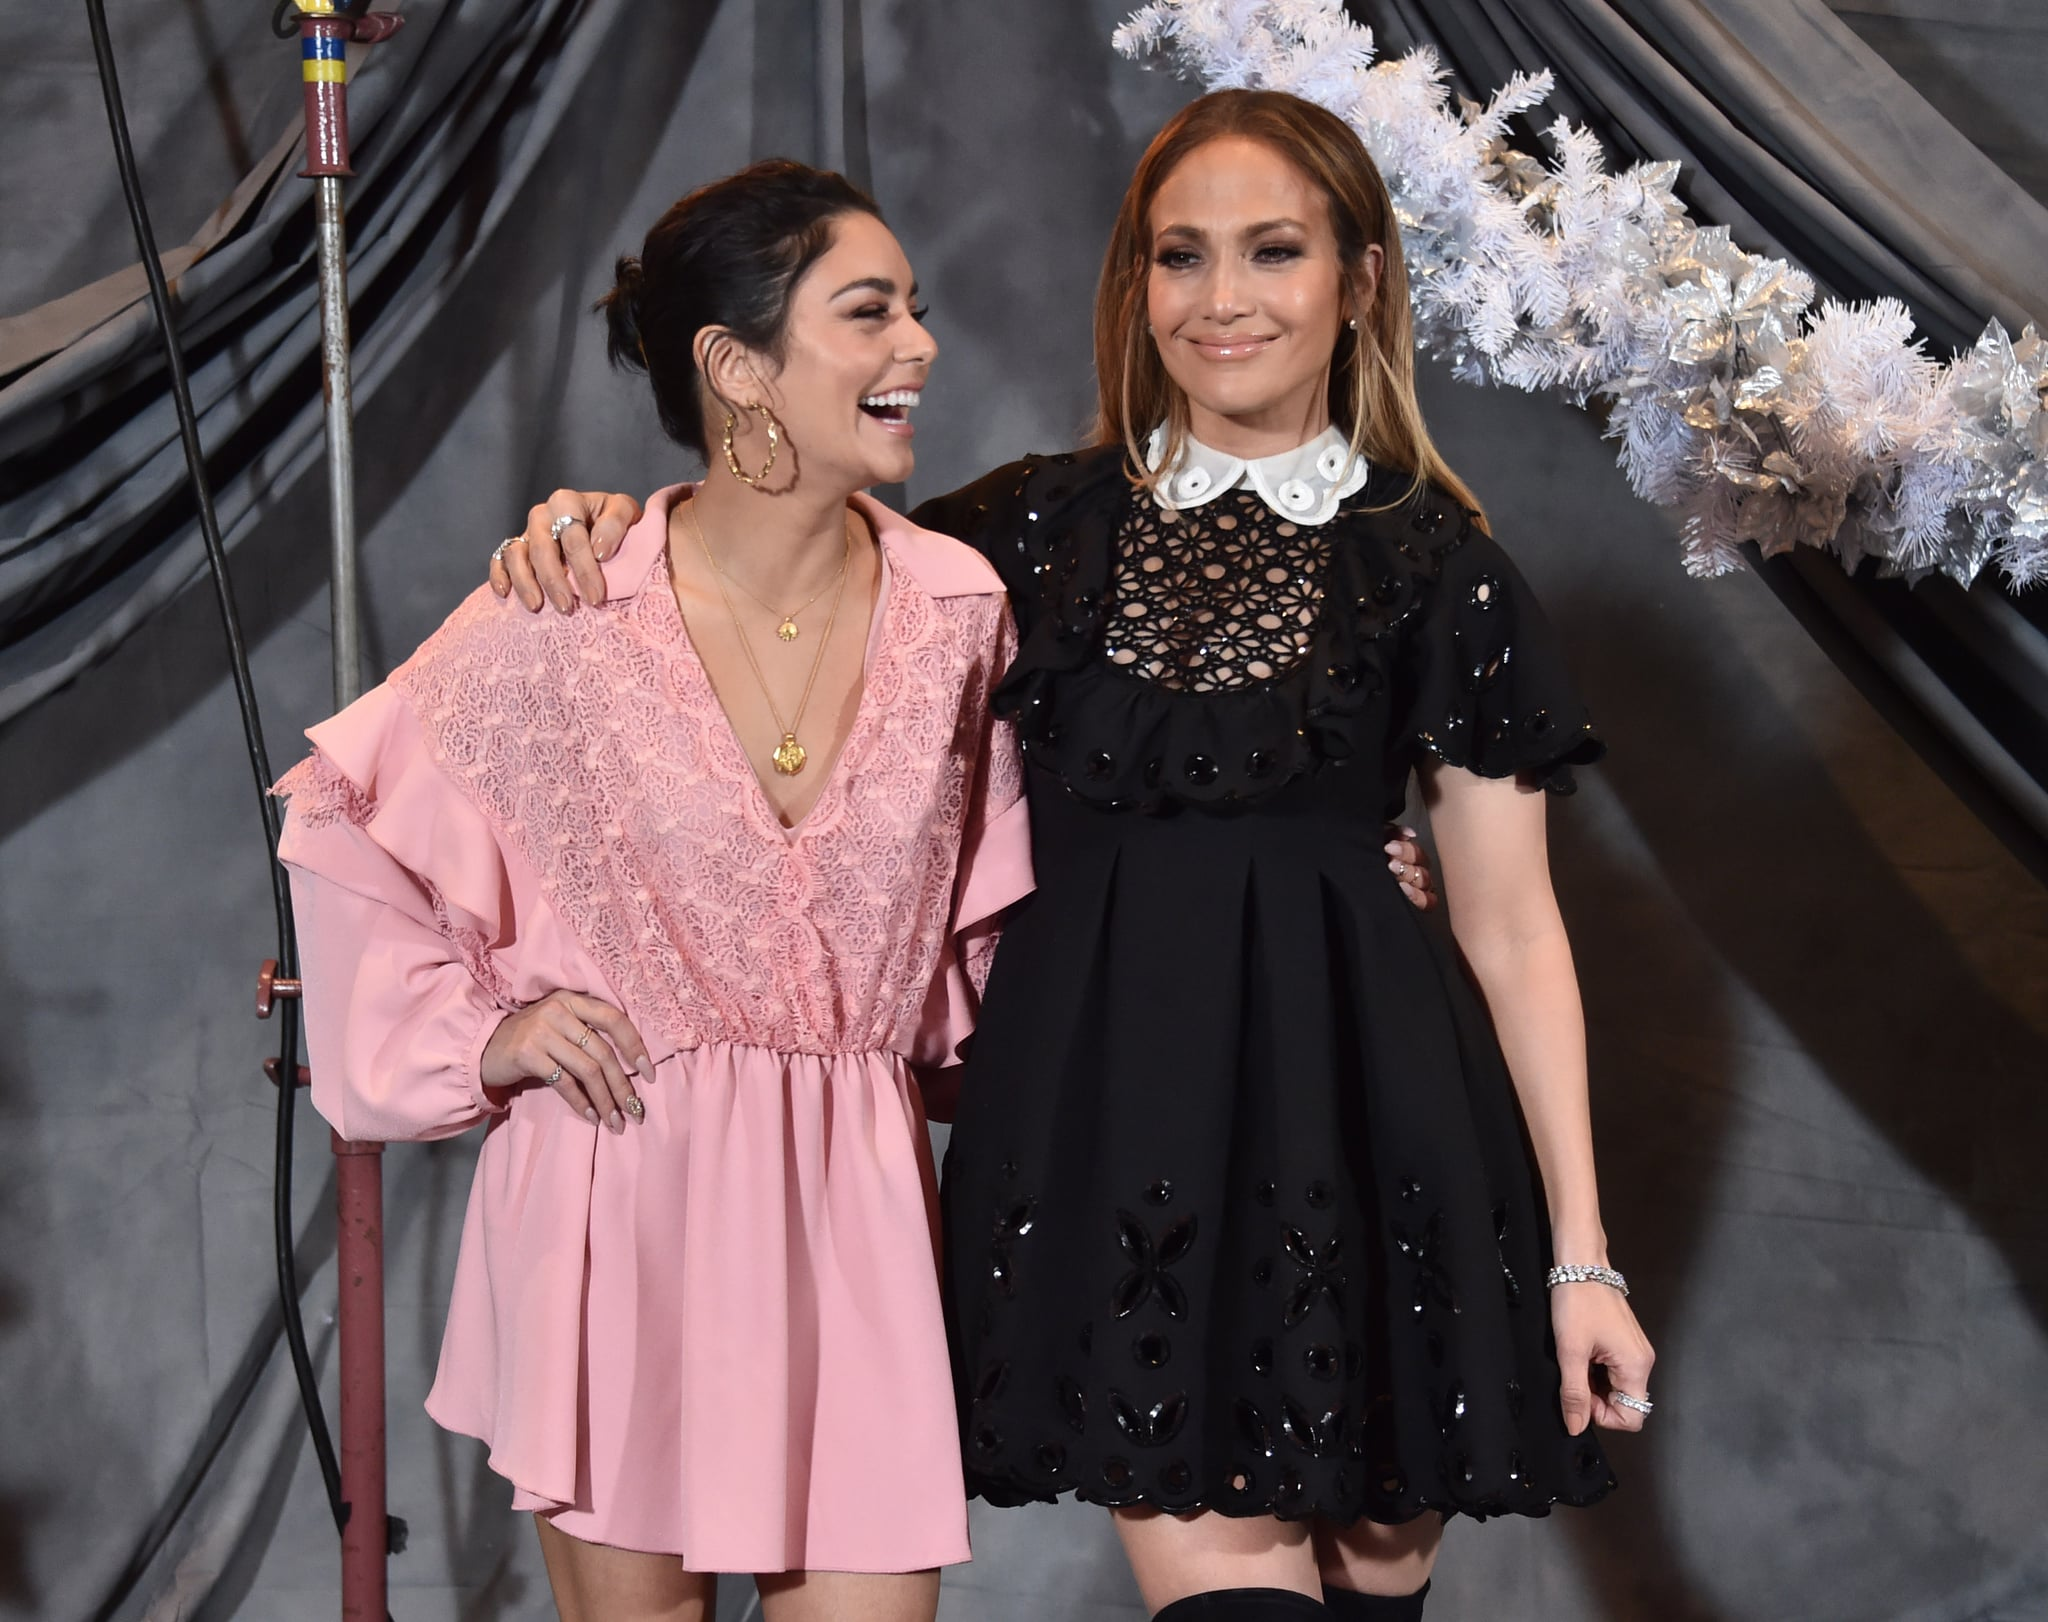 LOS ANGELES, CALIFORNIA - DECEMBER 09: Vanessa Hudgens and Jennifer Lopez attend a photo call for STX Films'